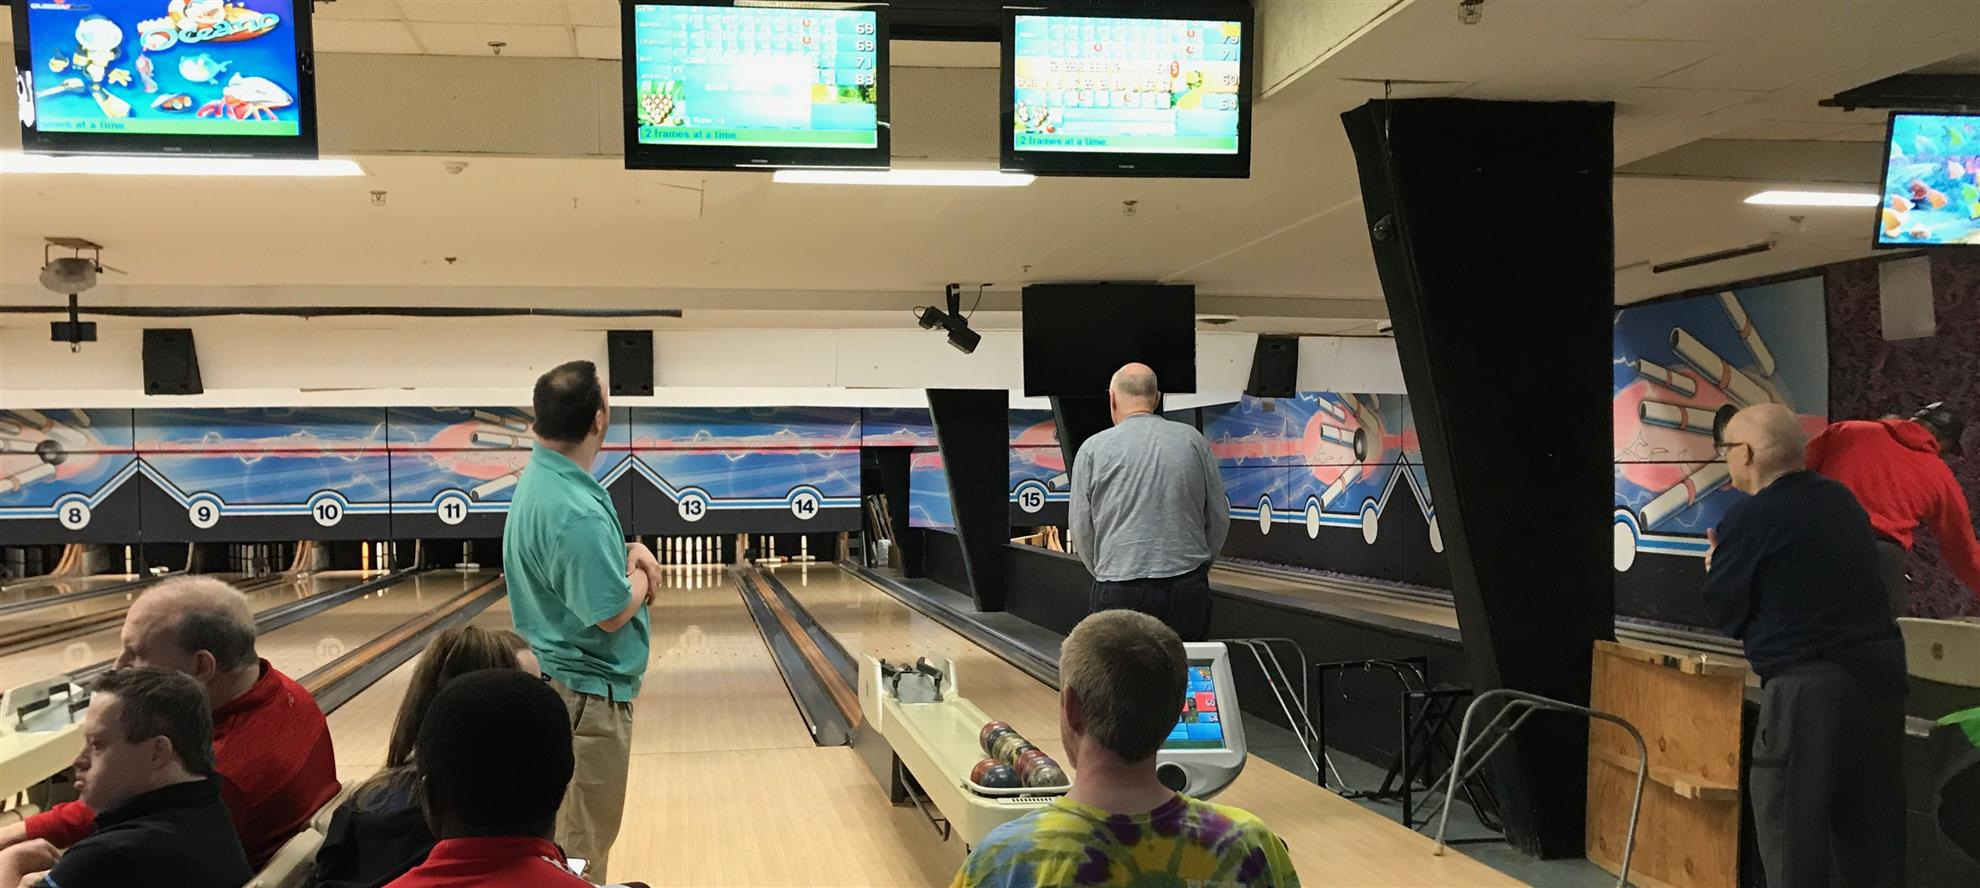 Bowling with Minuteman Arc